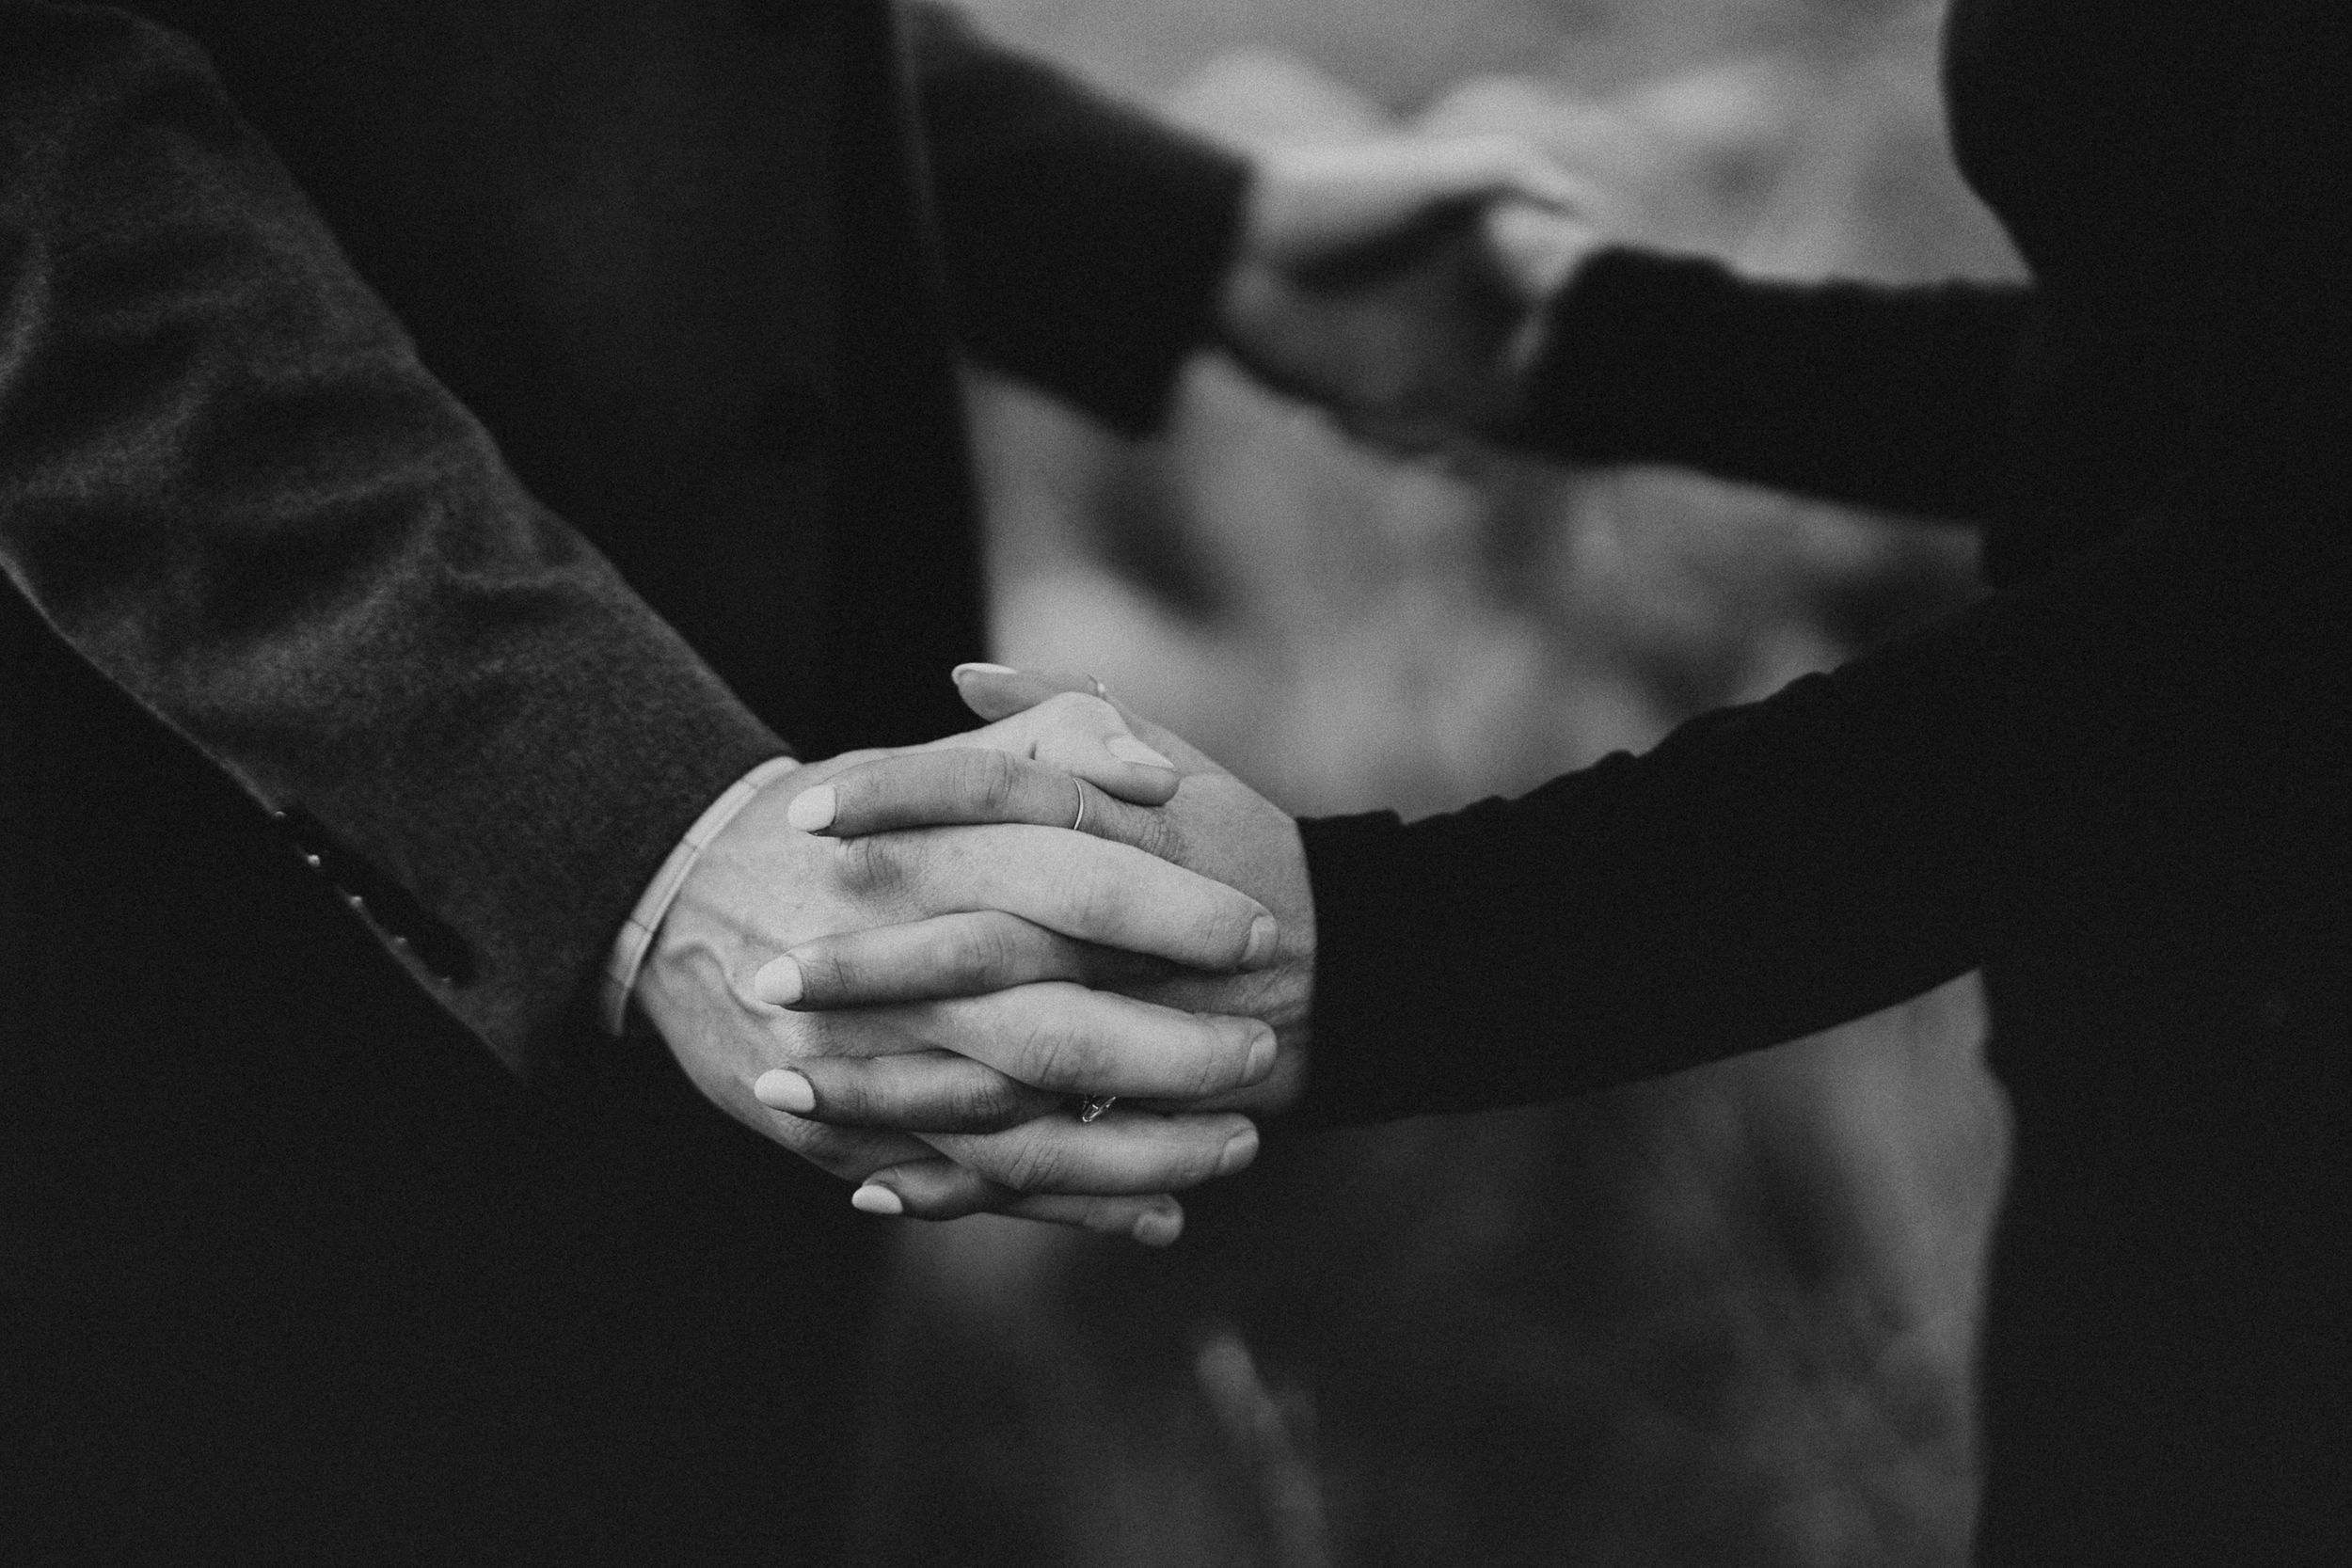 up close black and white image of a couple holding hands